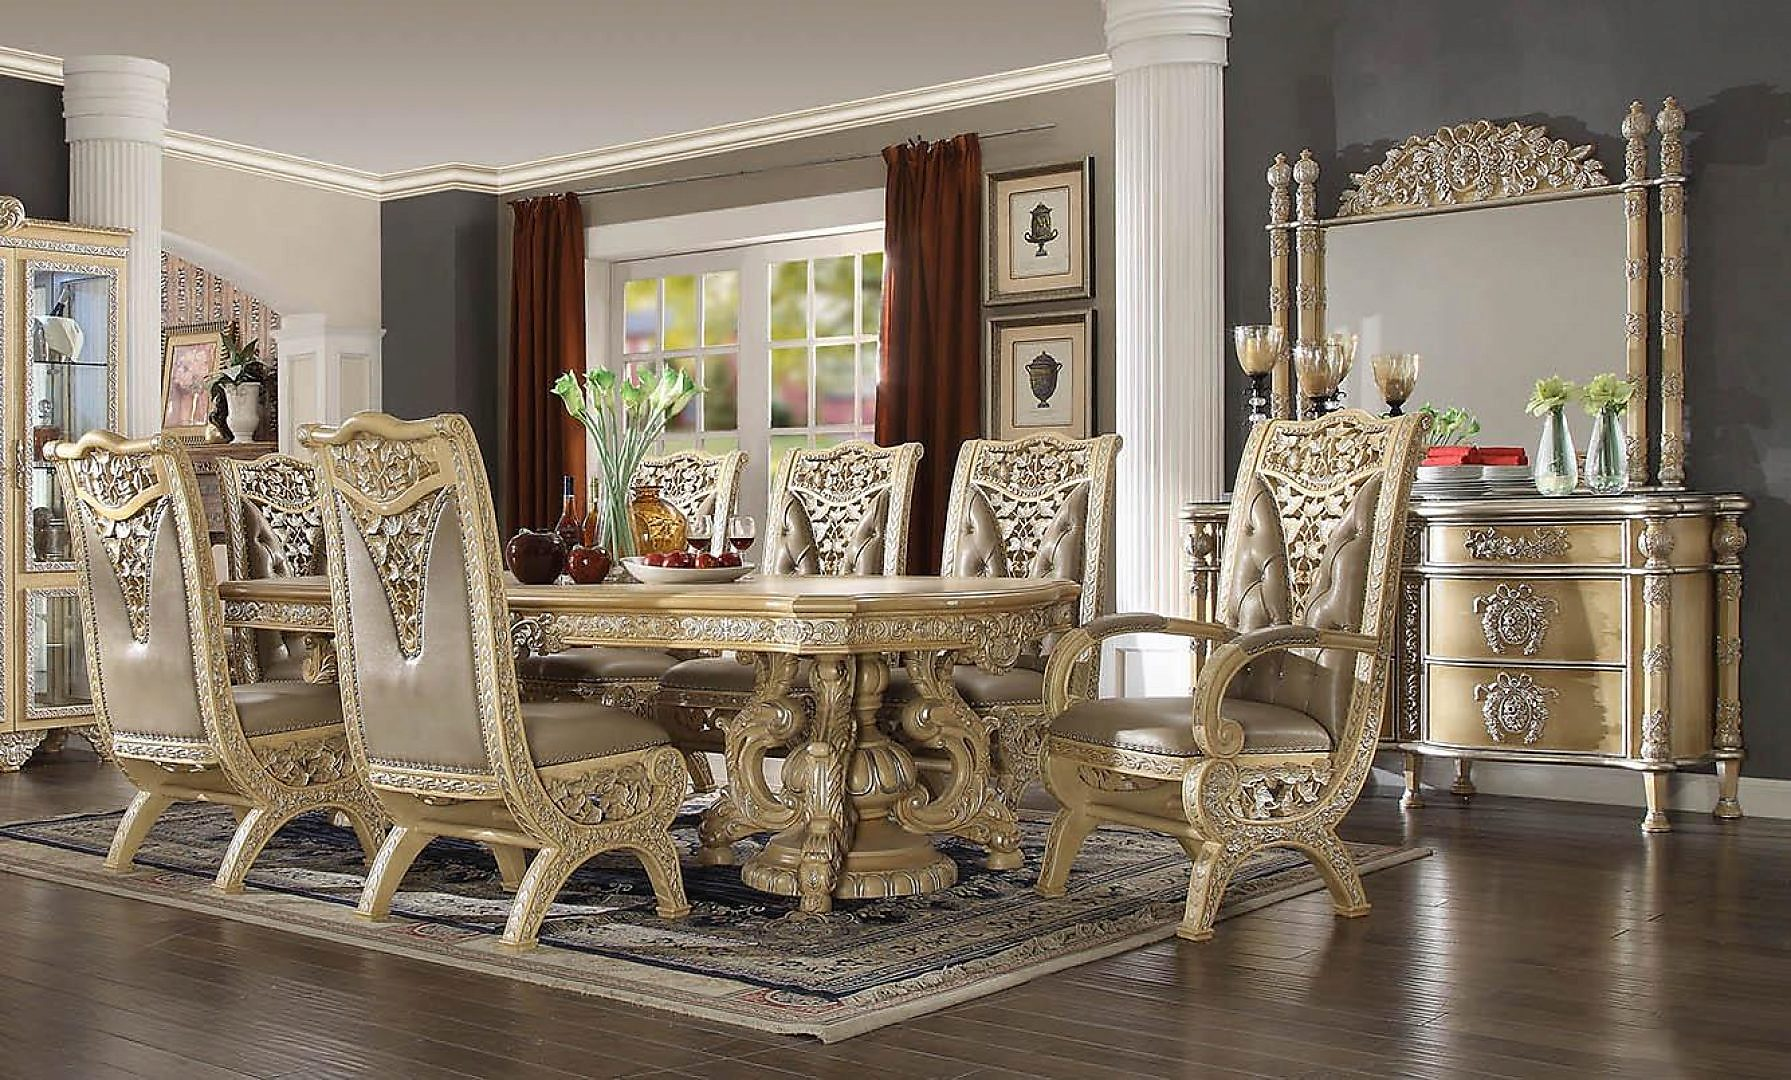 Traditional Classic HD-8015 Dining Table Set 9 Pcs by Homey Design